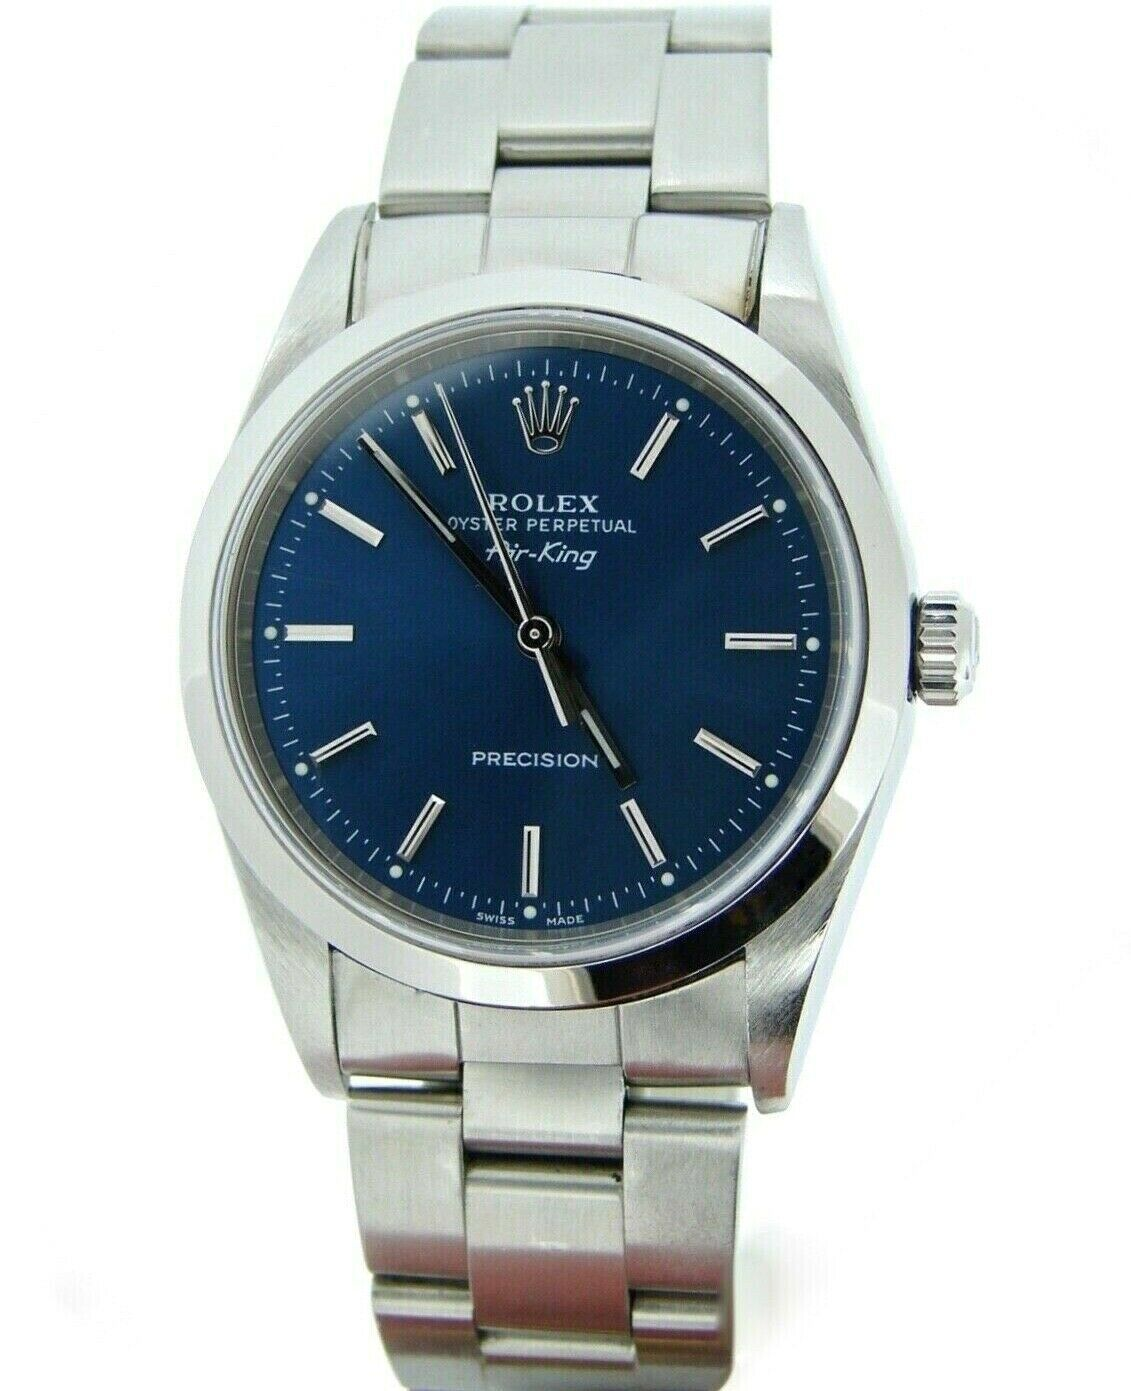 Rolex Air King Precision Mens Stainless Steel Watch Oyster